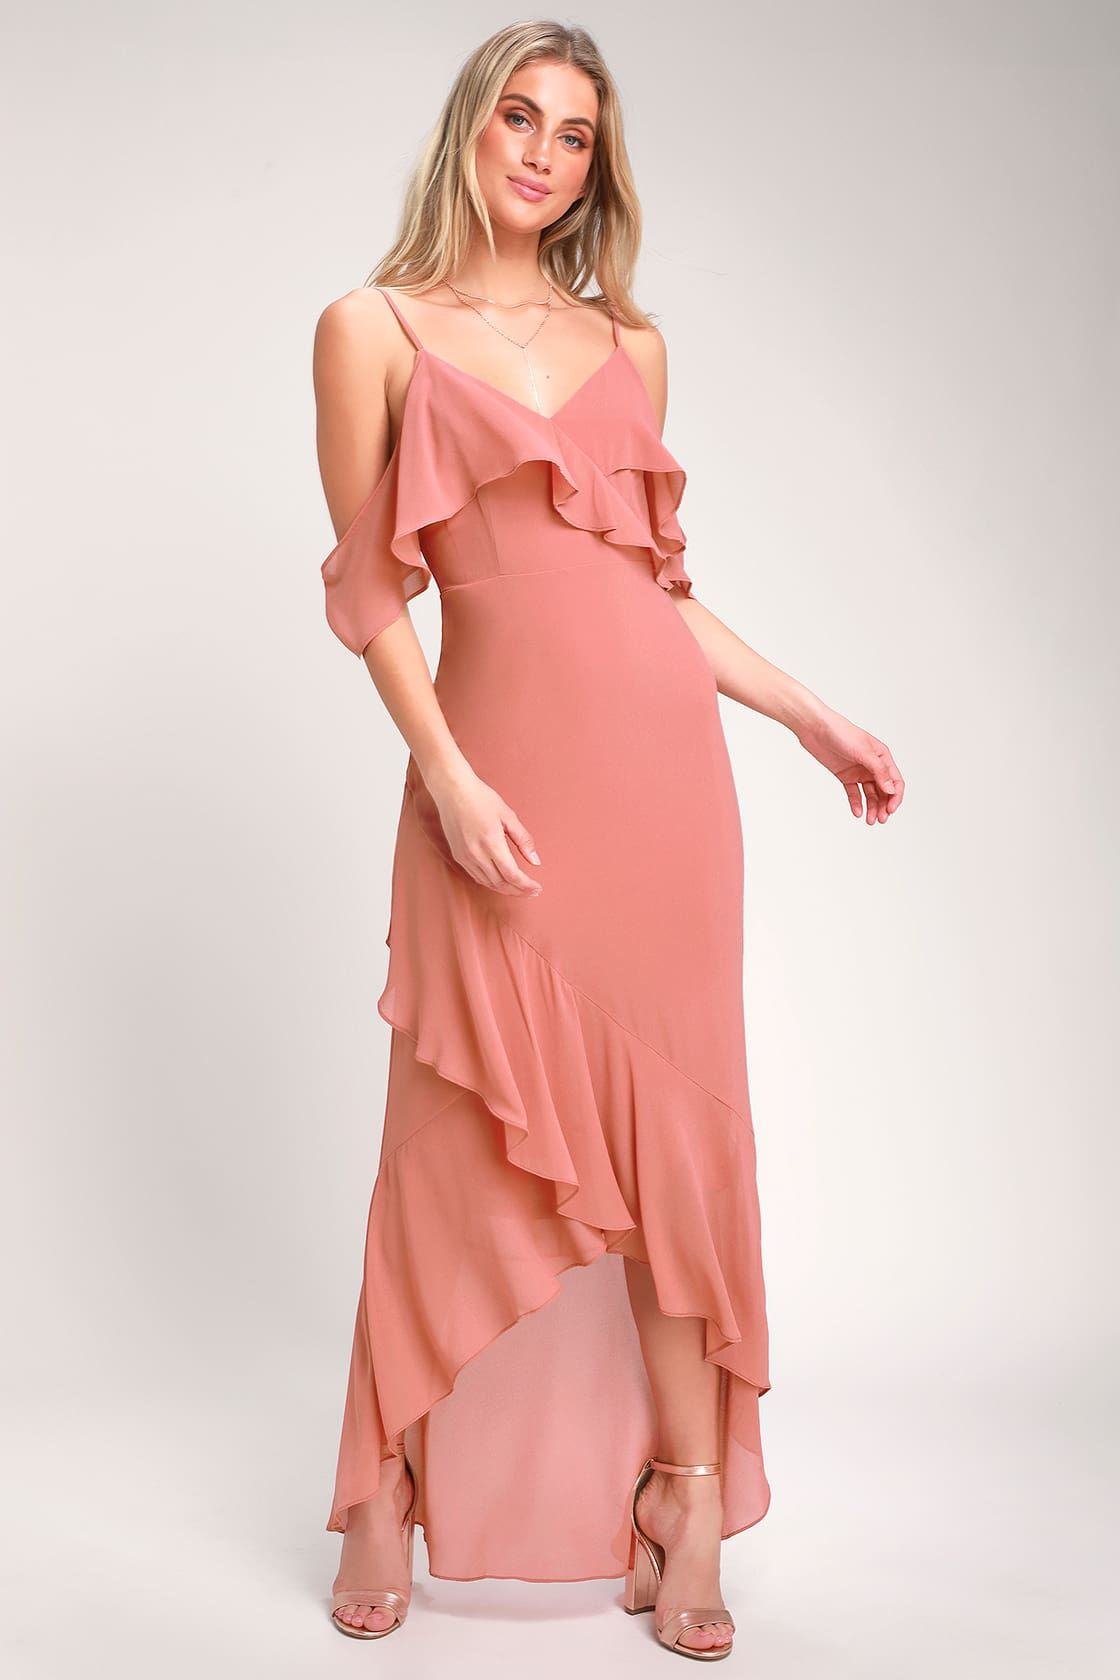 e8933fc25cd Lovely Rusty Rose Dress - Off-the-Shoulder Dress - Maxi Dress